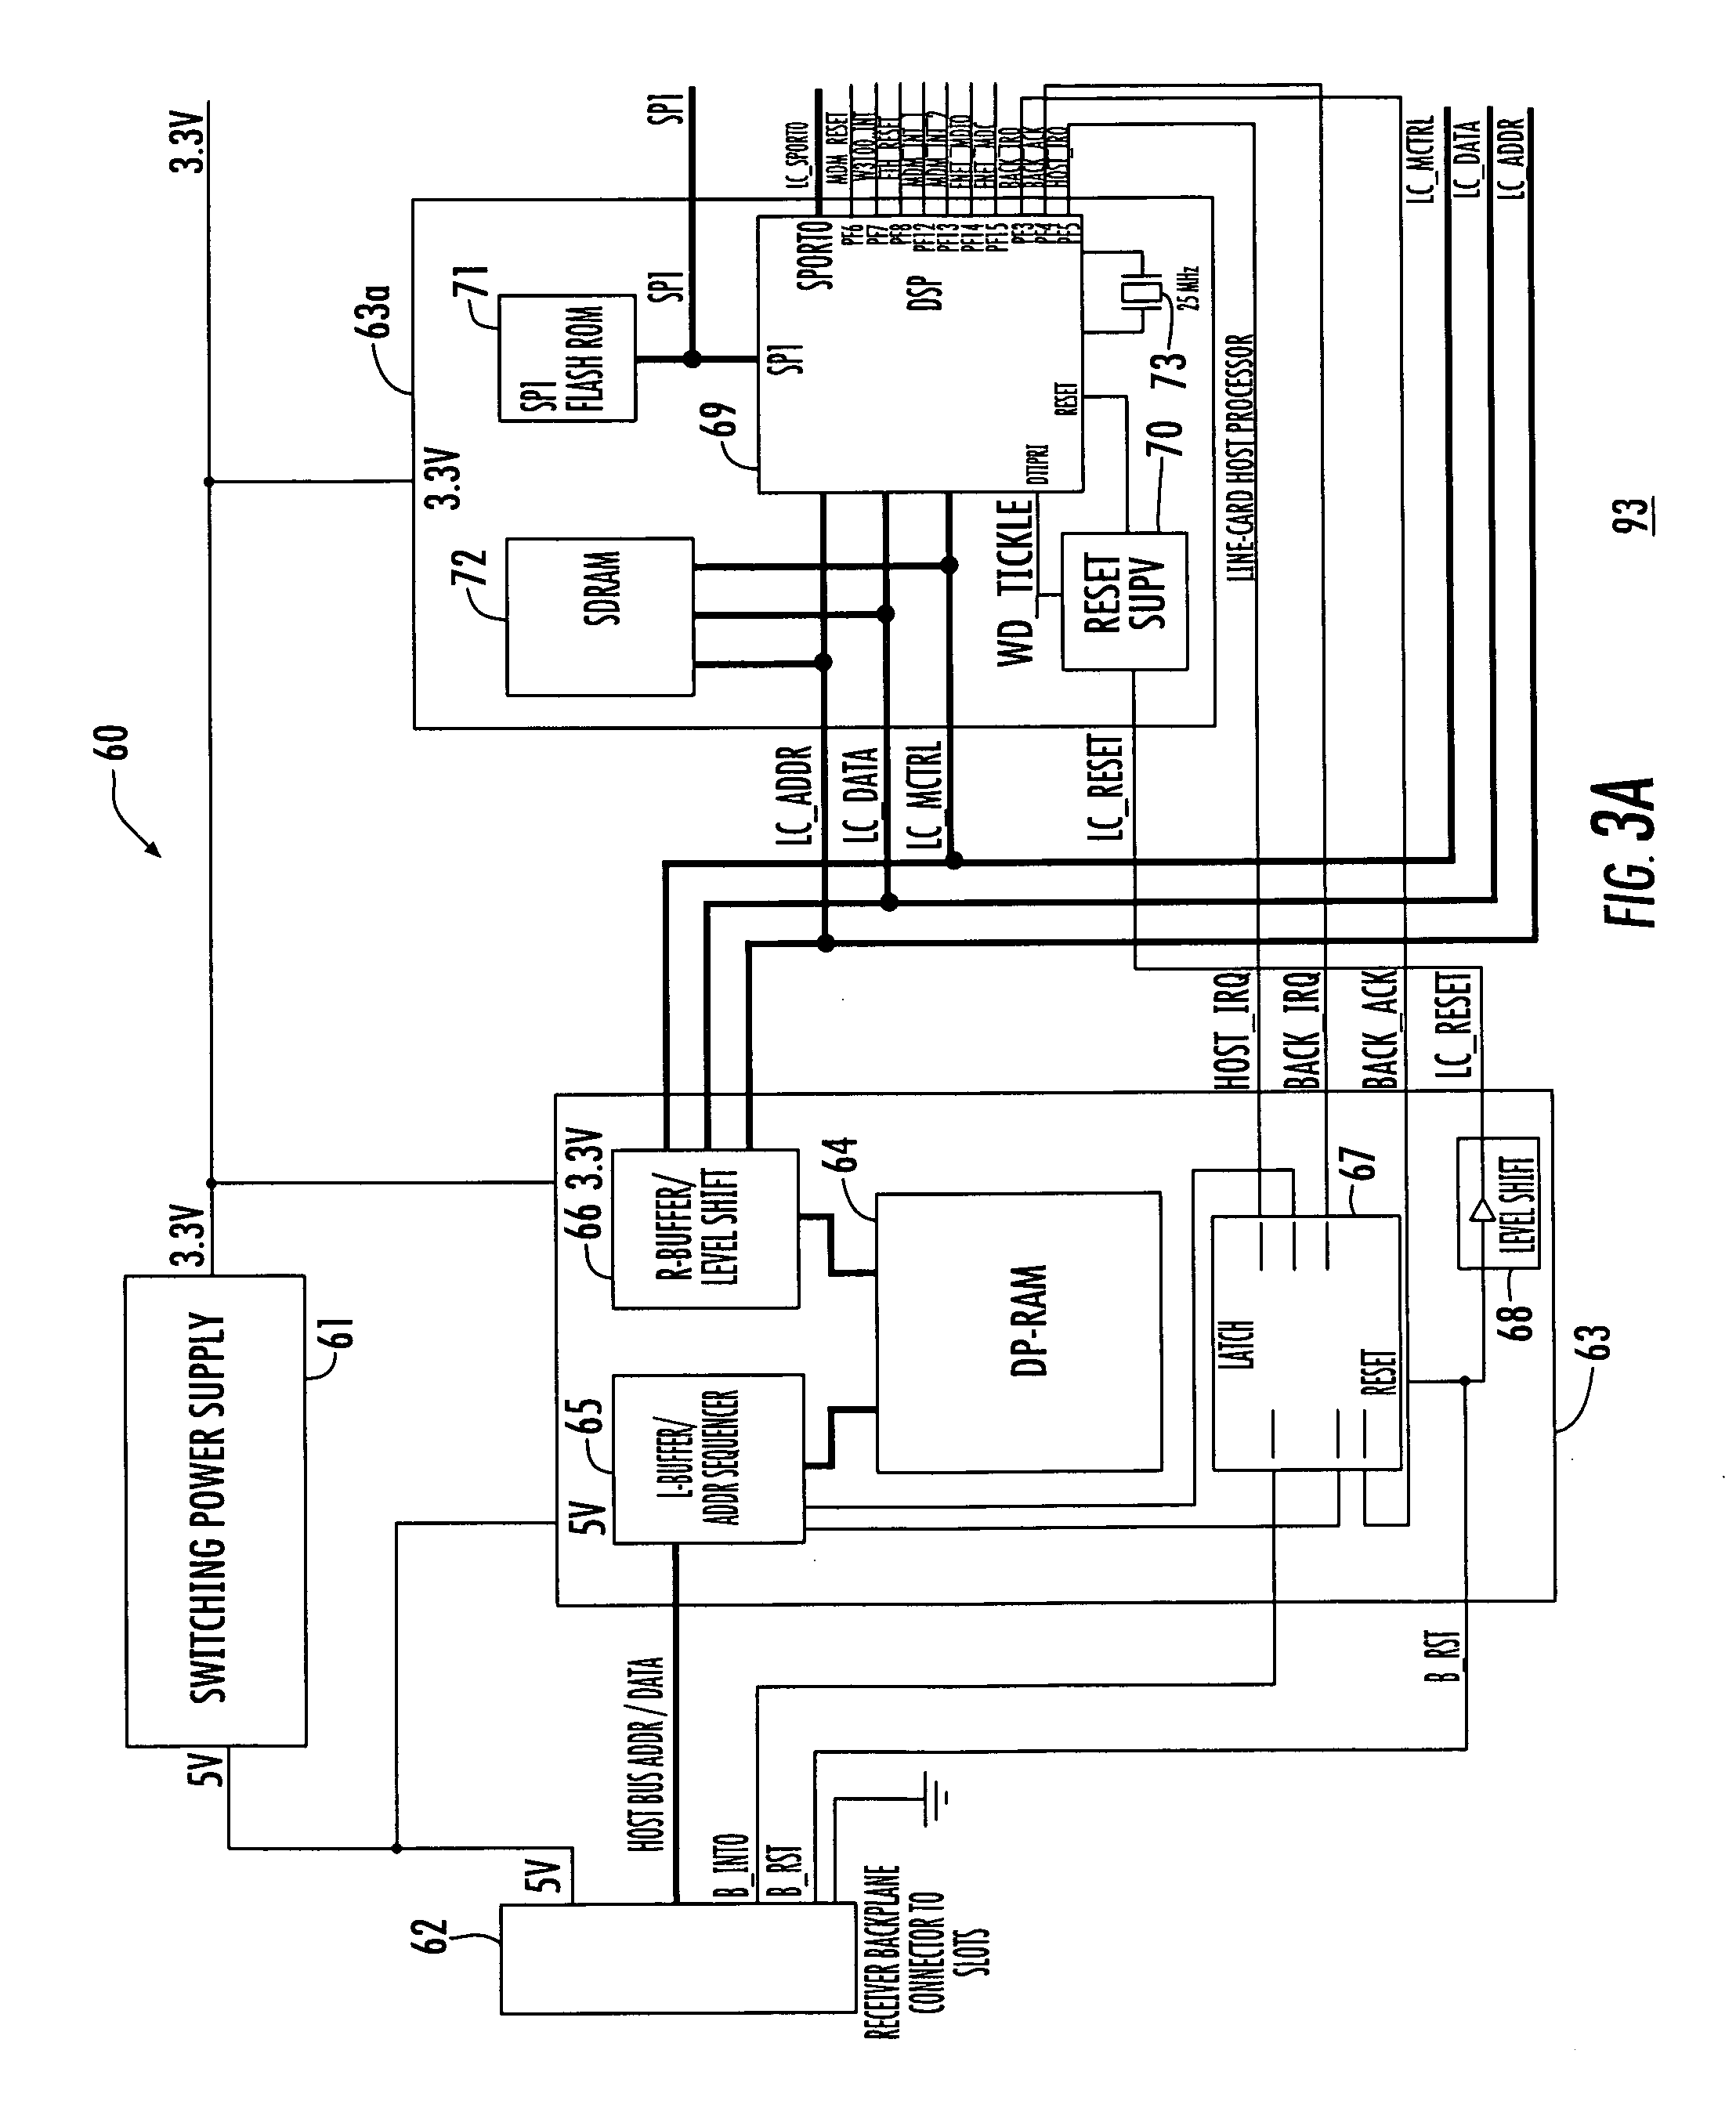 US20090058630A1 20090305 D00004?resize\\\\\\\=665%2C814 goodman sequencer wiring diagram fan sequencer circuit, marvair goodman sequencer wiring diagram at gsmx.co